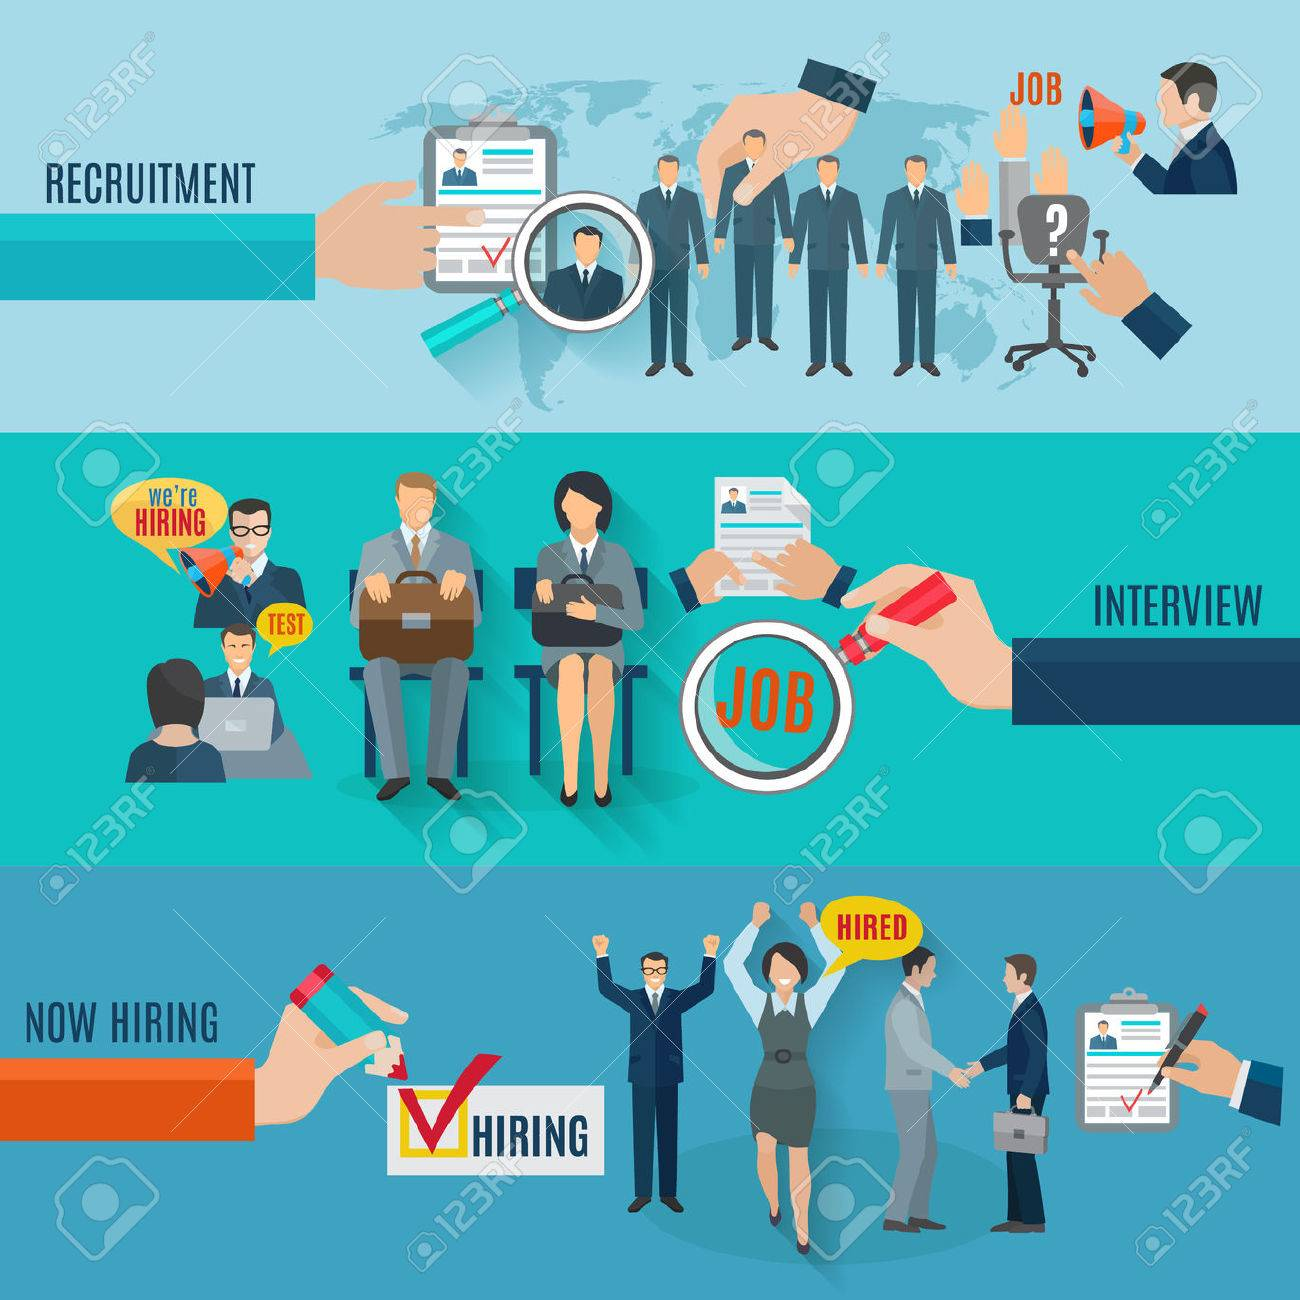 Hire horizontal banner set with recruitment interview flat elements isolated vector illustration - 42622816